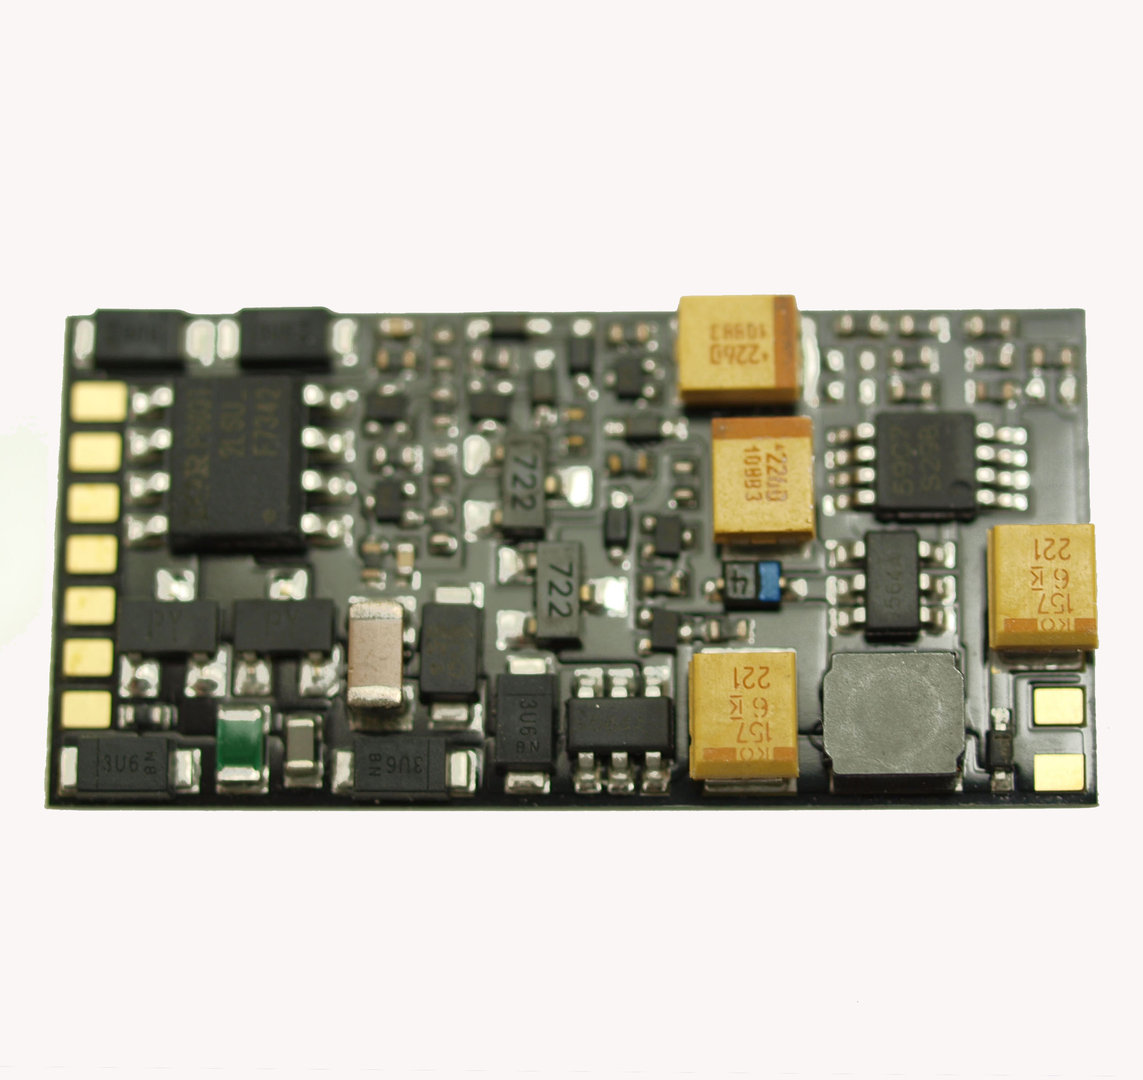 ZIMO MX645P16 Sounddecoder mit PluX16 Schnittstelle 1,2A Neu 3W MM DCC OVP